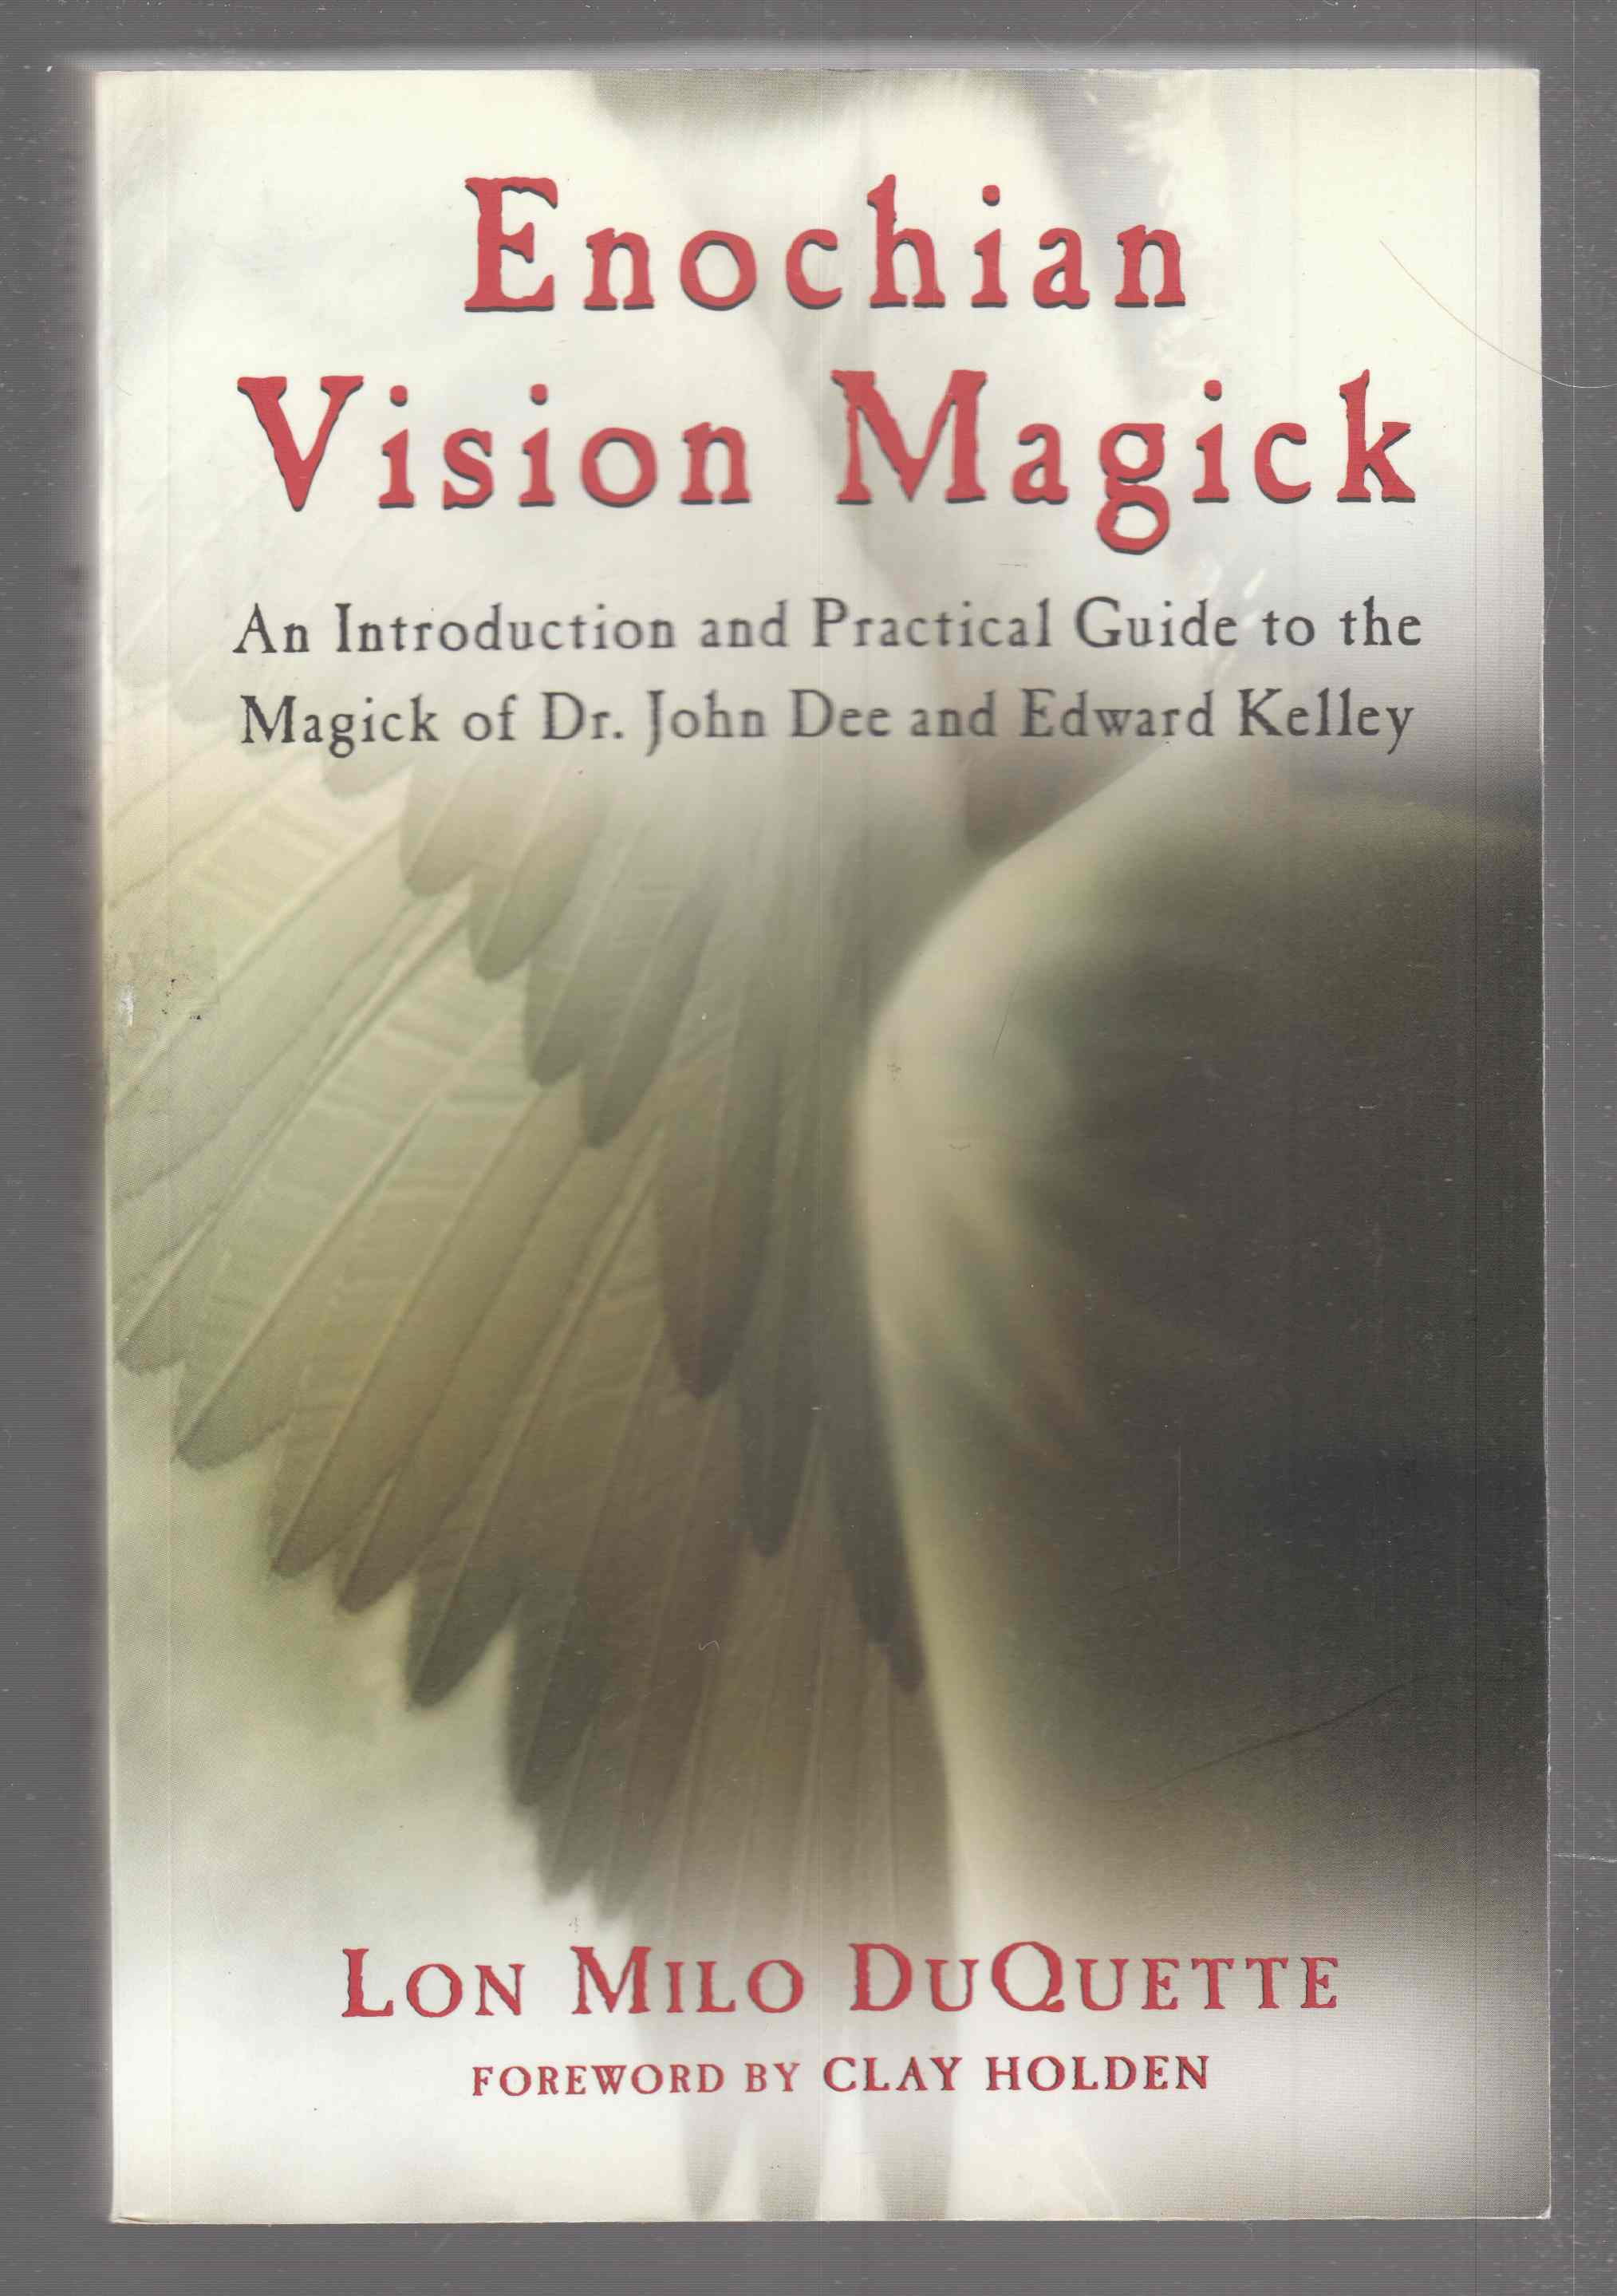 Image for Enochian Vision Magick  An Introduction and Practical Guide to the Magick of Dr. John Dee and Edward Kelley